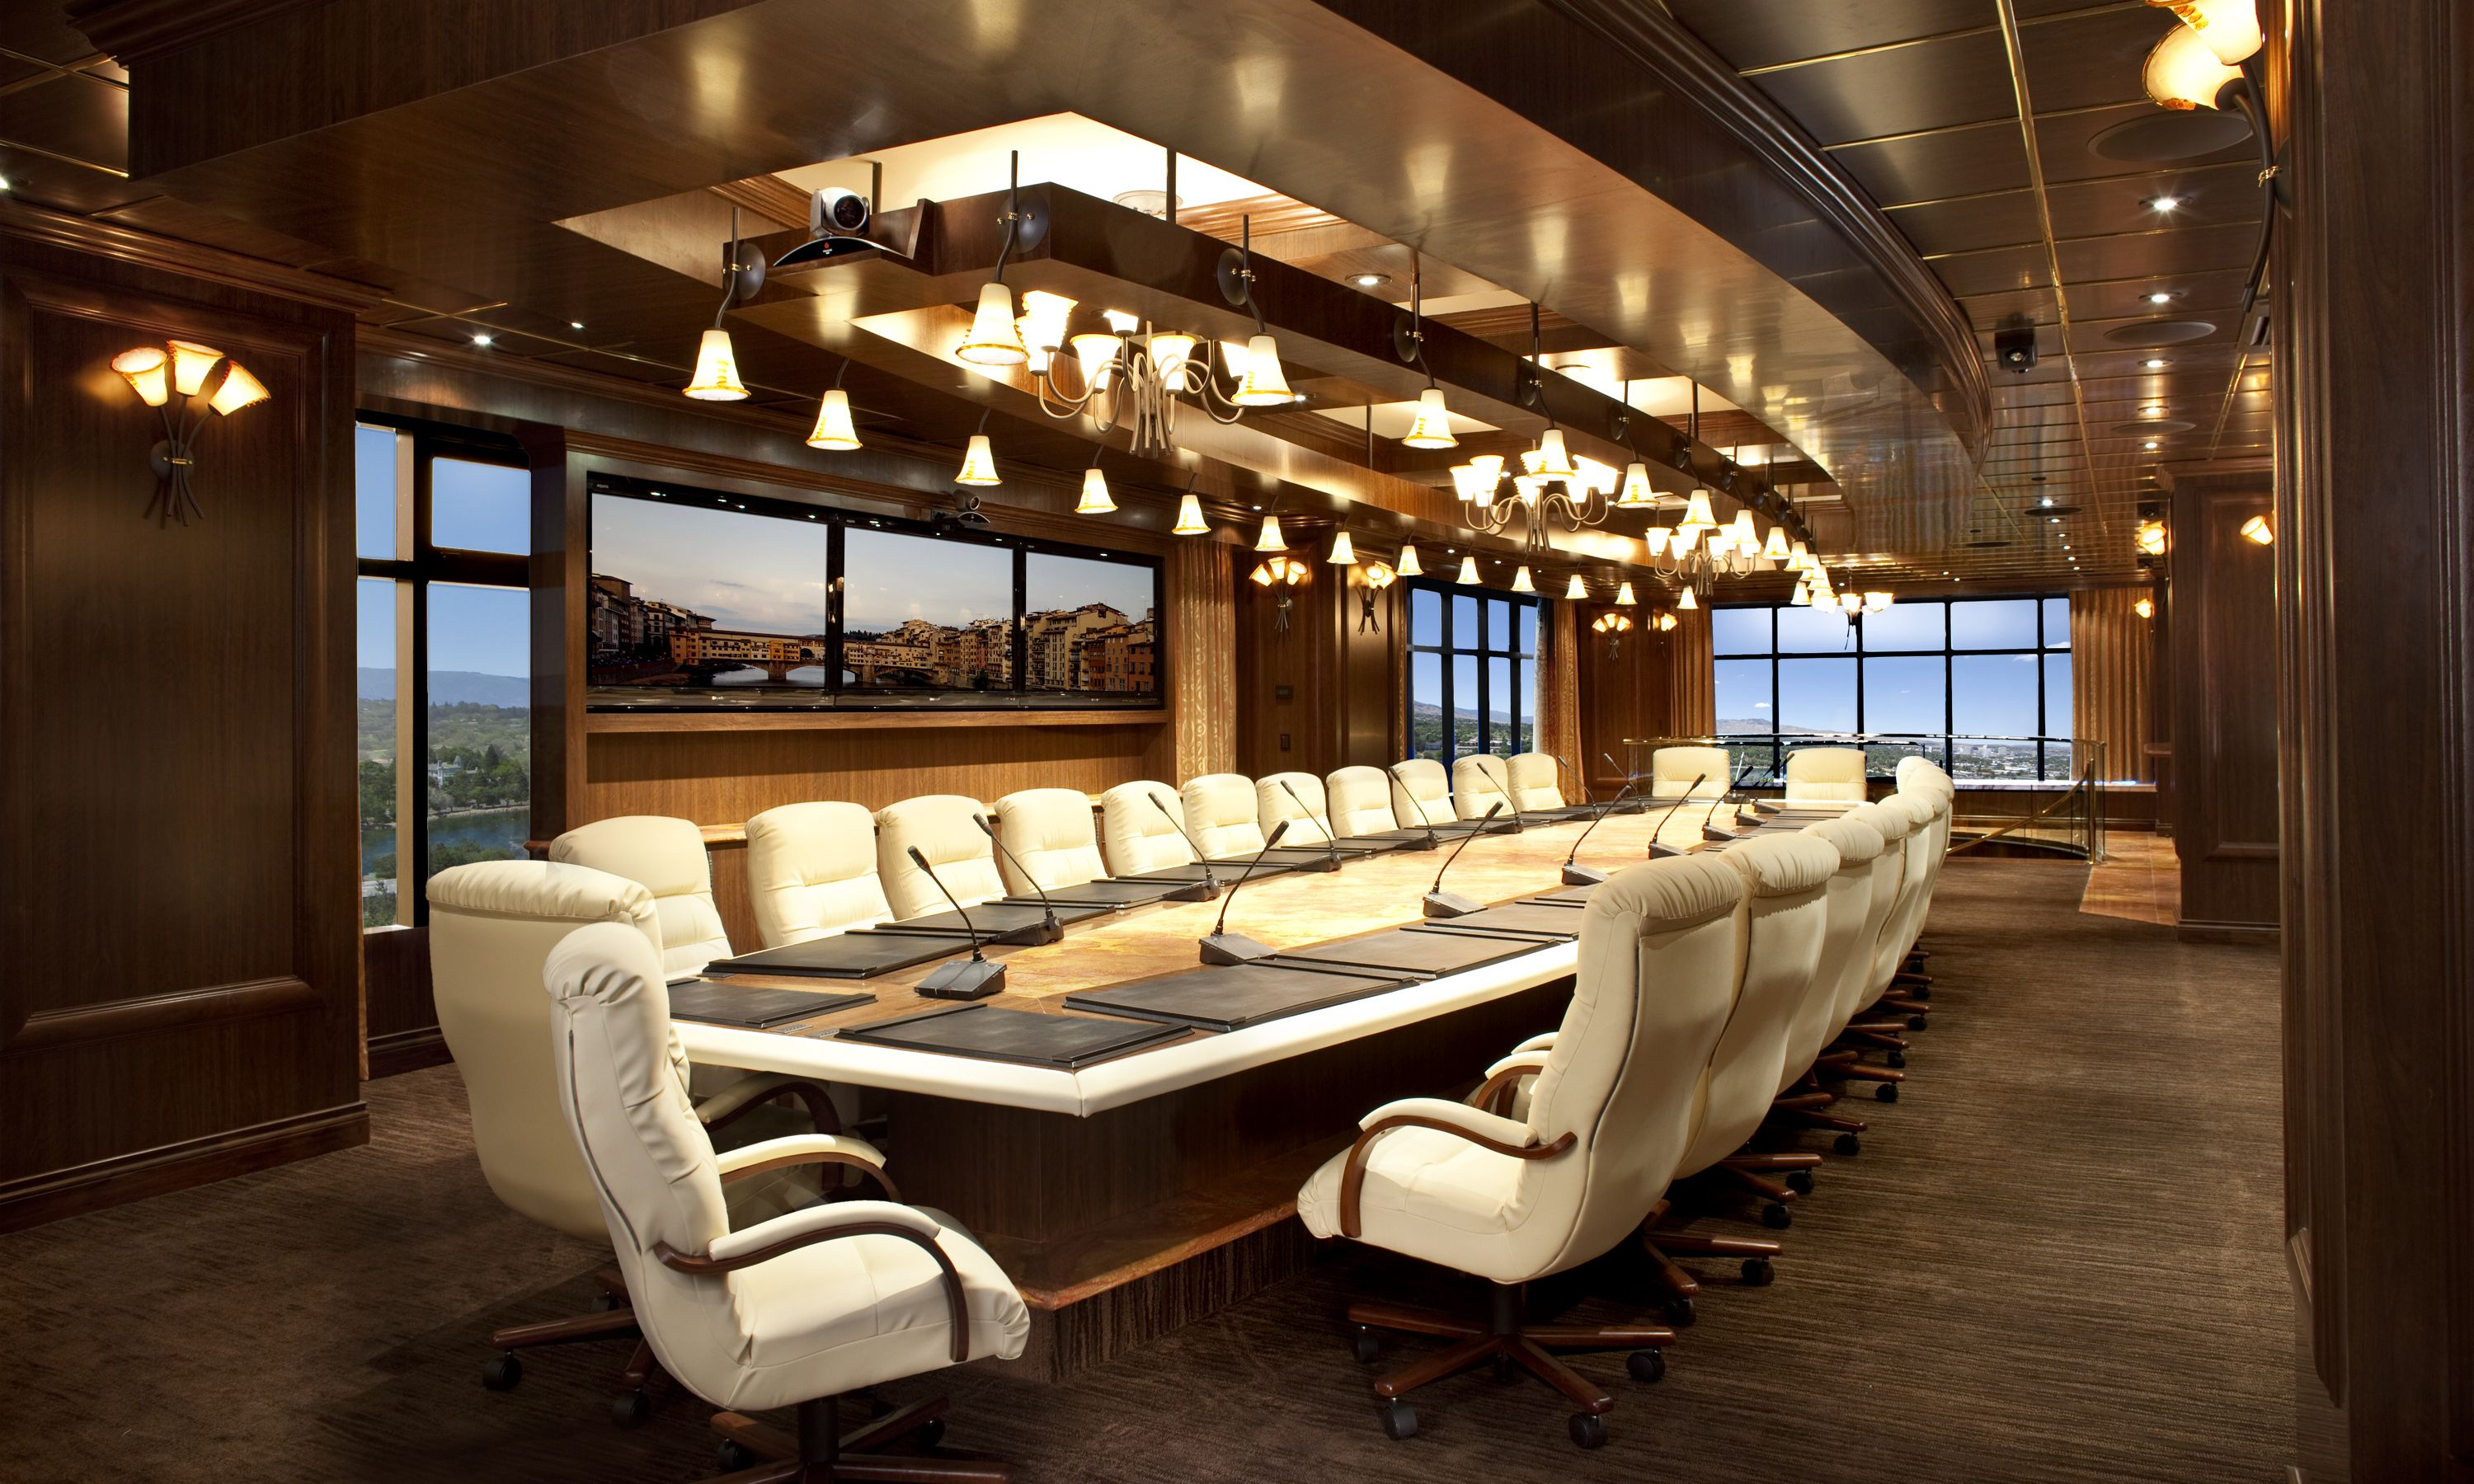 Image Result For LUXURY CONFERENCE ROOM